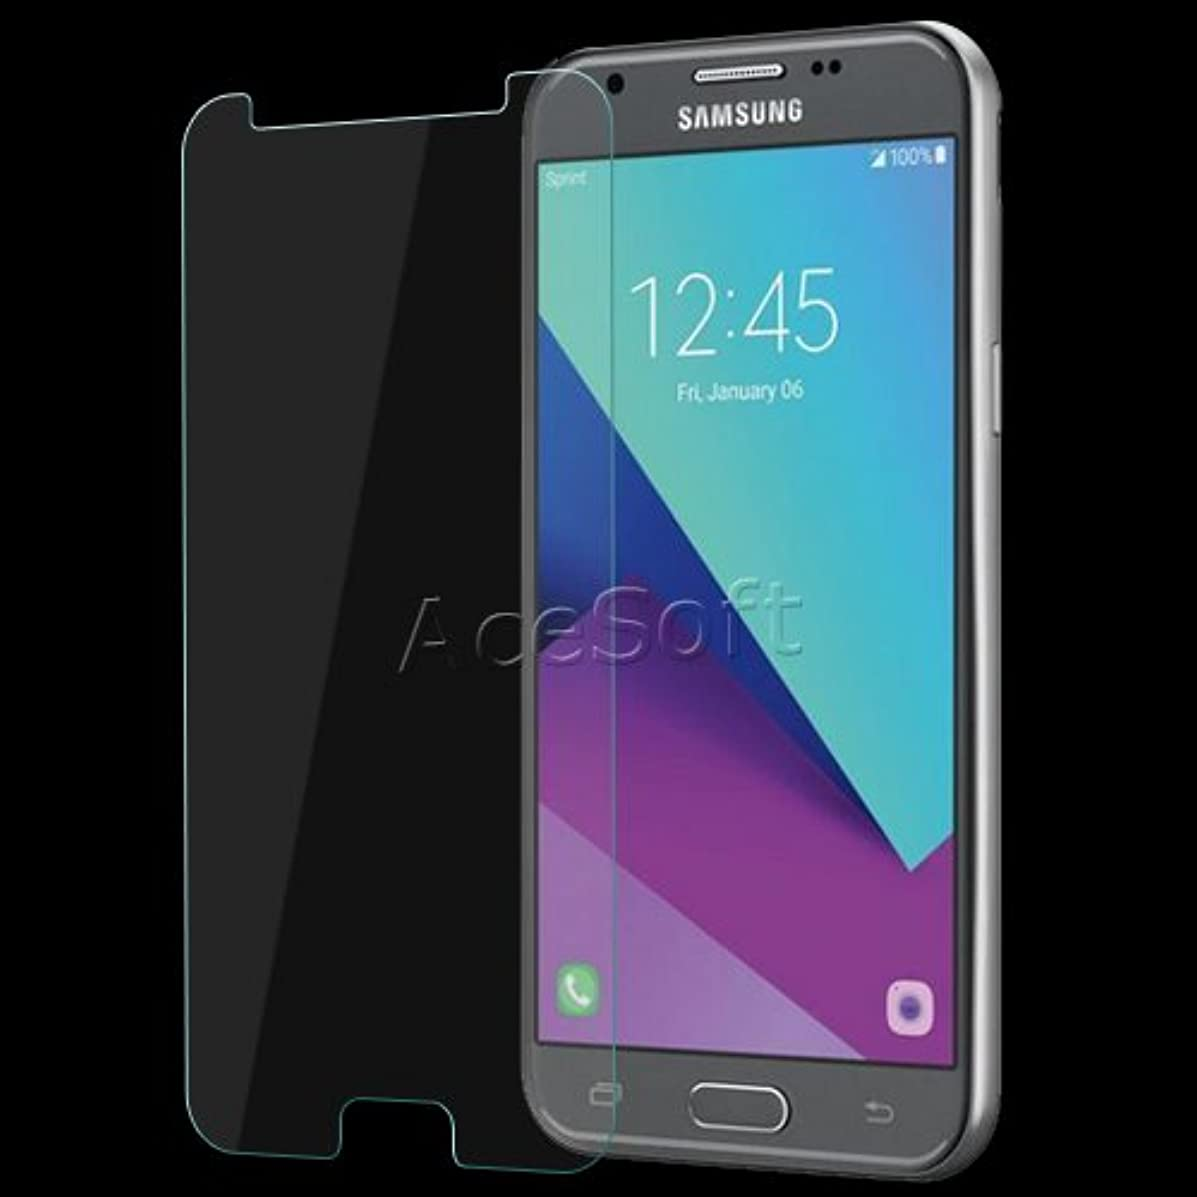 100% New Ultra-Clear Anti-Scratch Durable Tempered Glass Screen Protector Film Guard Shield Saver Armor Cover for Samsung Galaxy J3 Mission SM-J327V Verizon